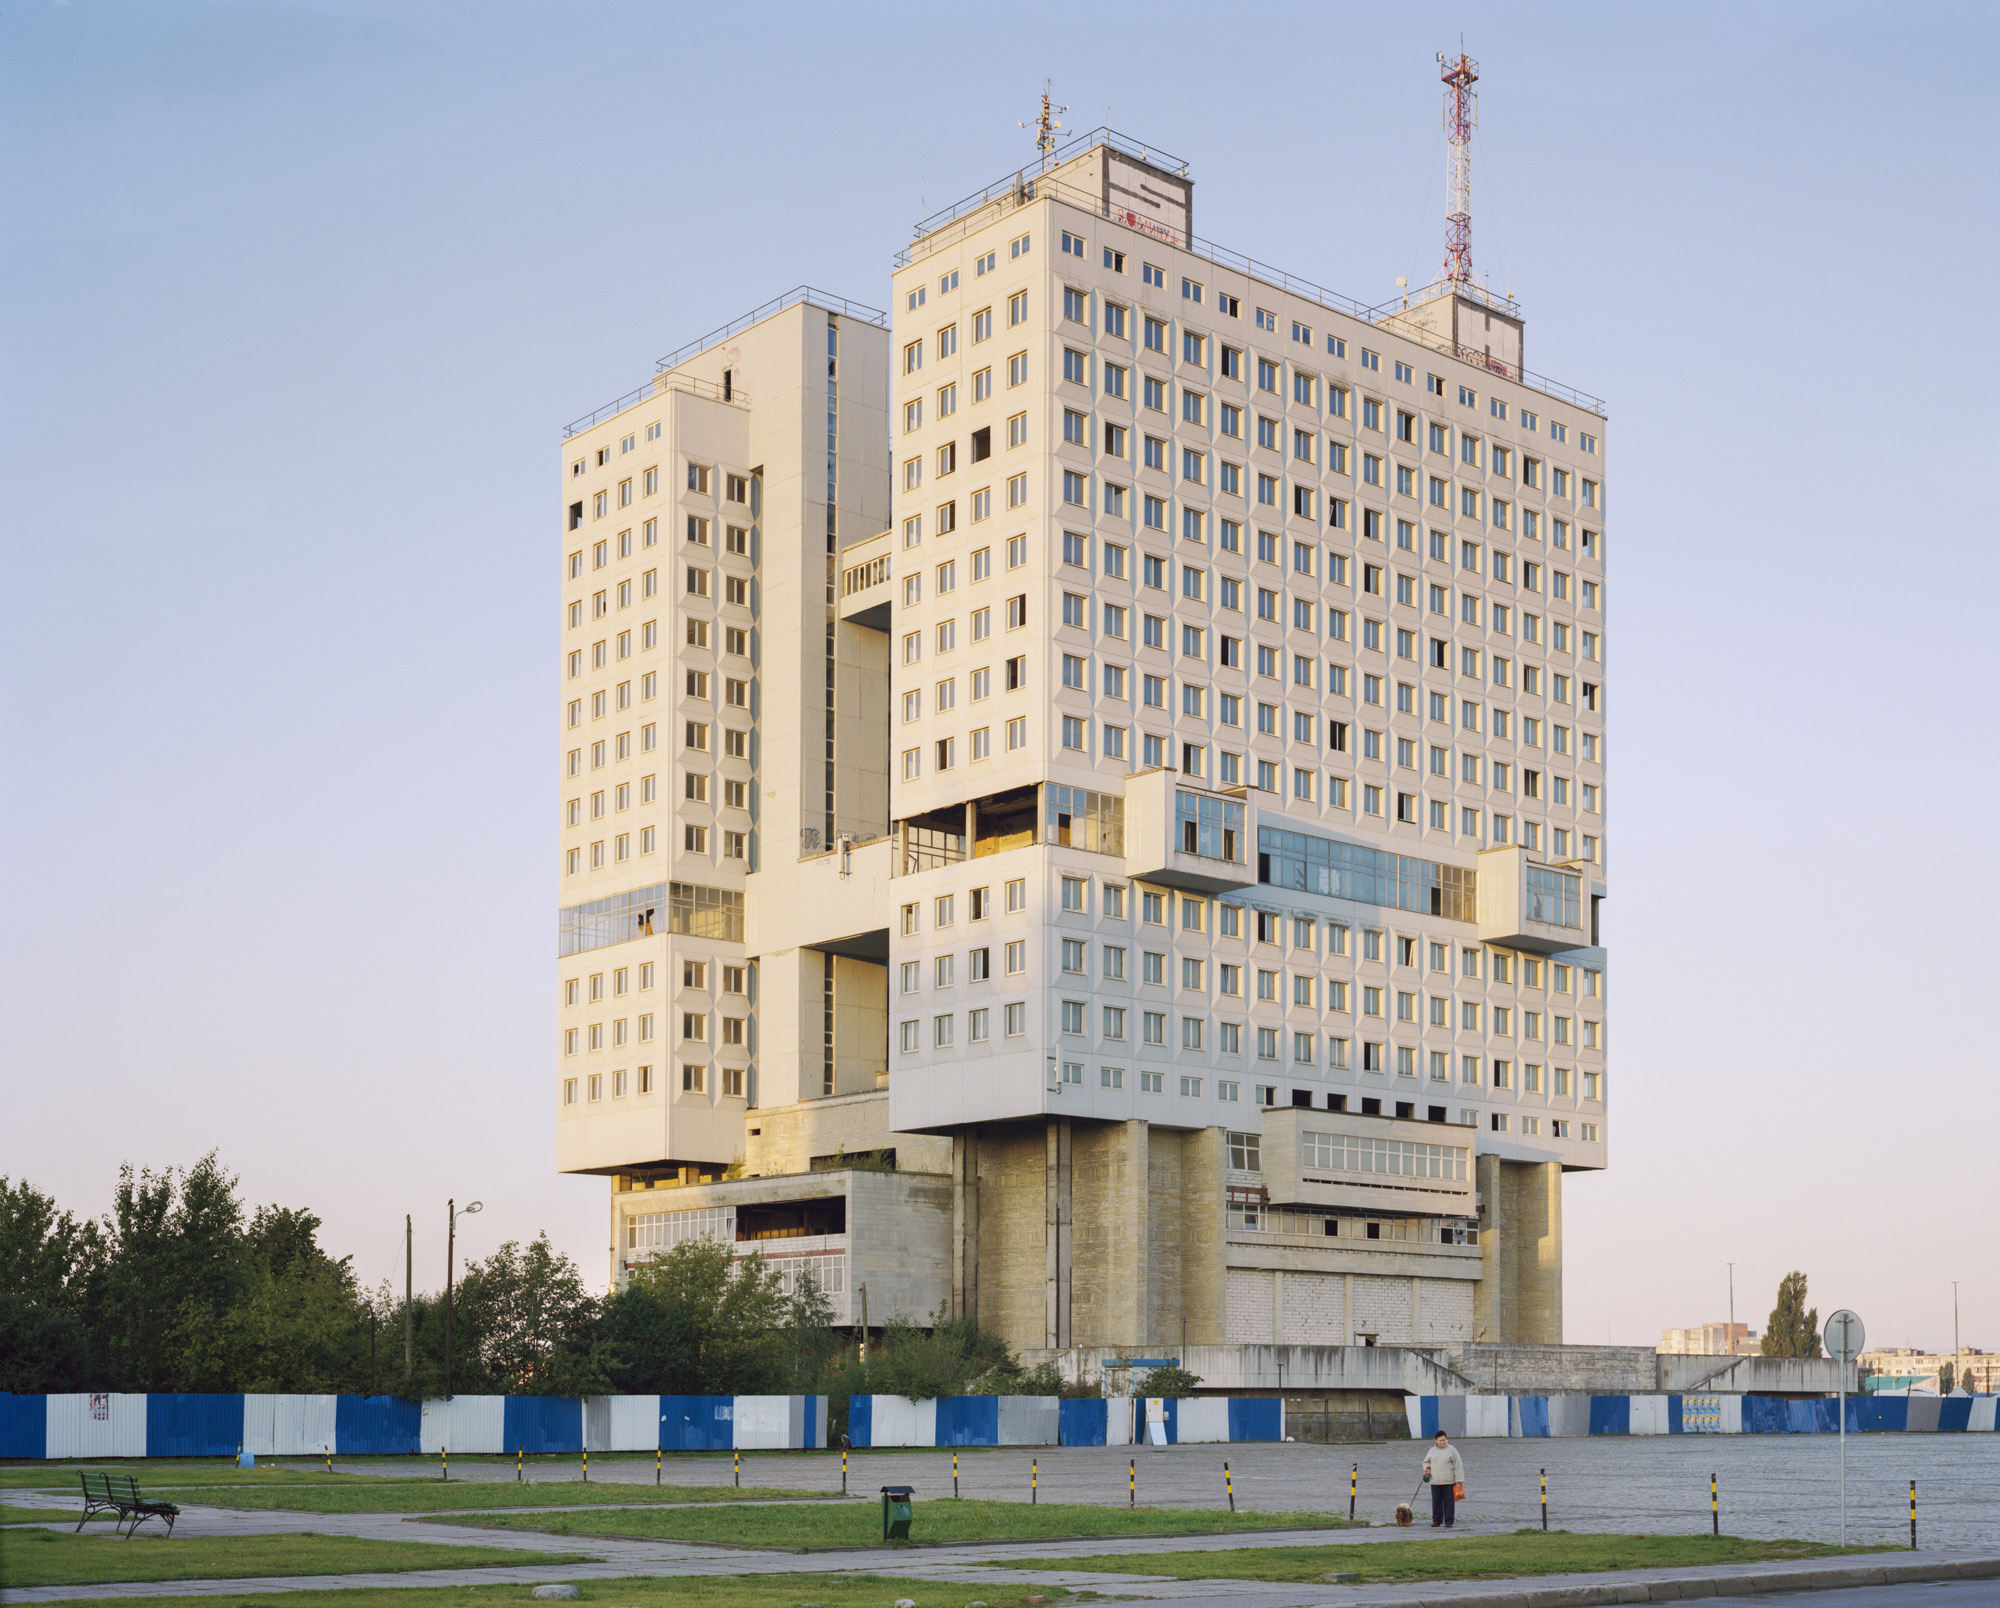 12-House-of-Soviets-Kaliningrad